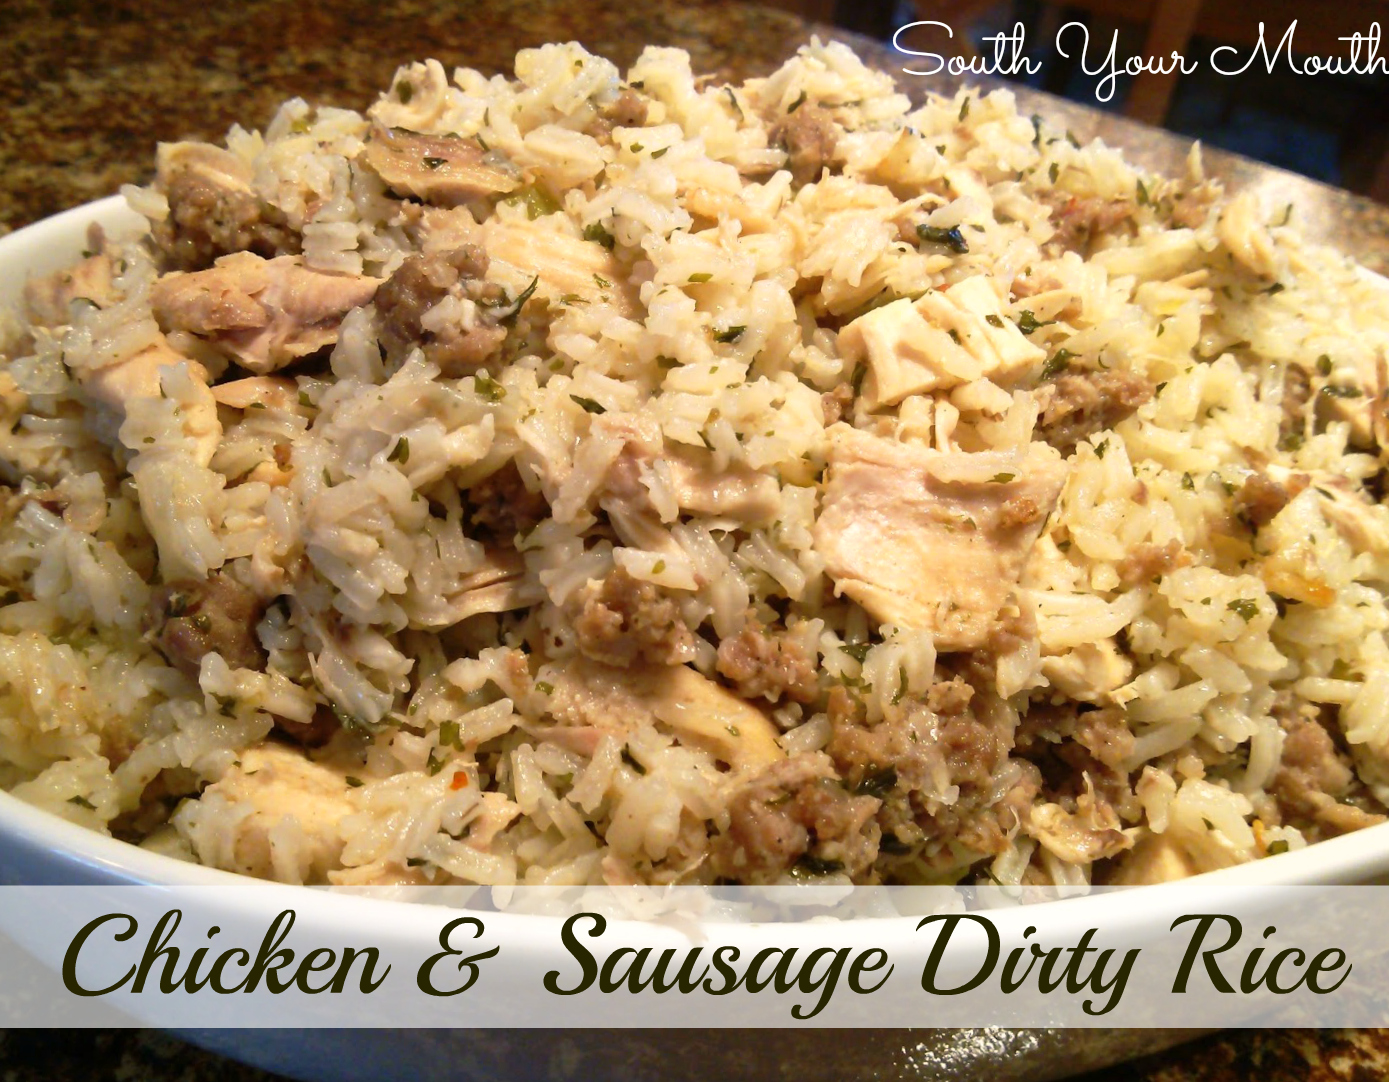 South Your Mouth: Chicken & Sausage Dirty Rice